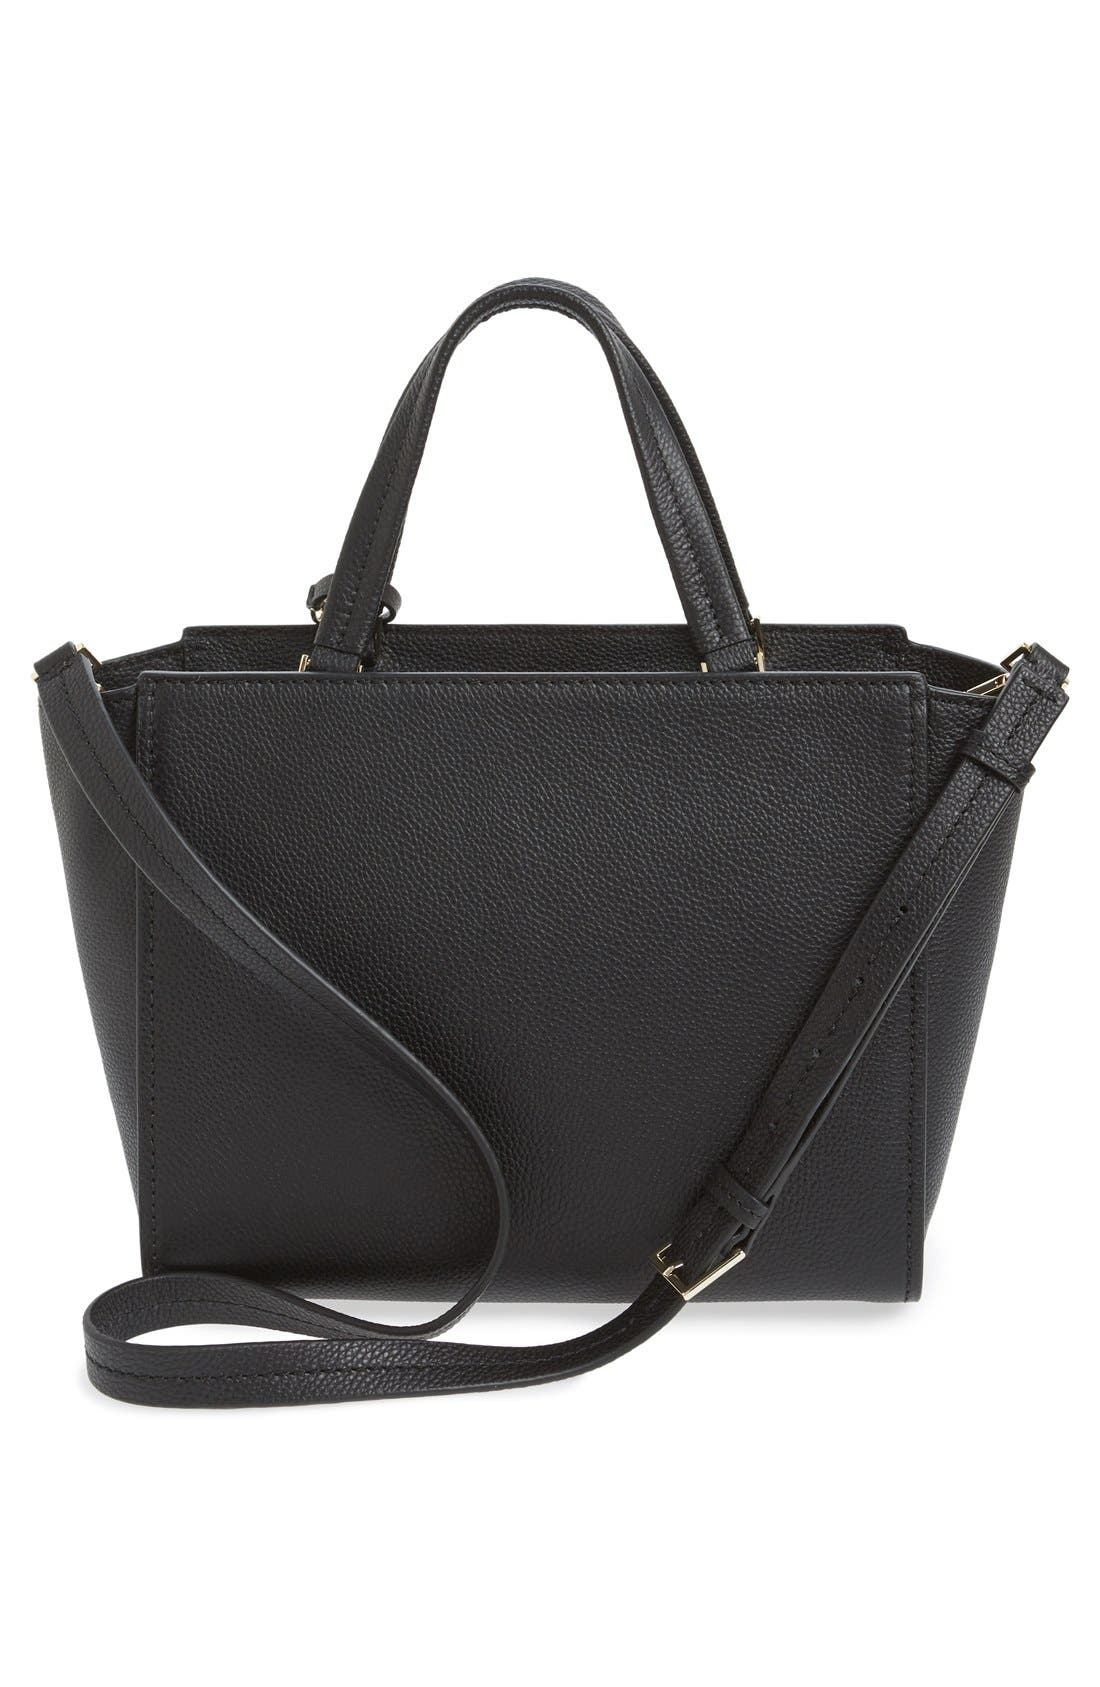 Alternate Image 3  - kate spade new york 'orchard street - dillon' tassel leather satchel